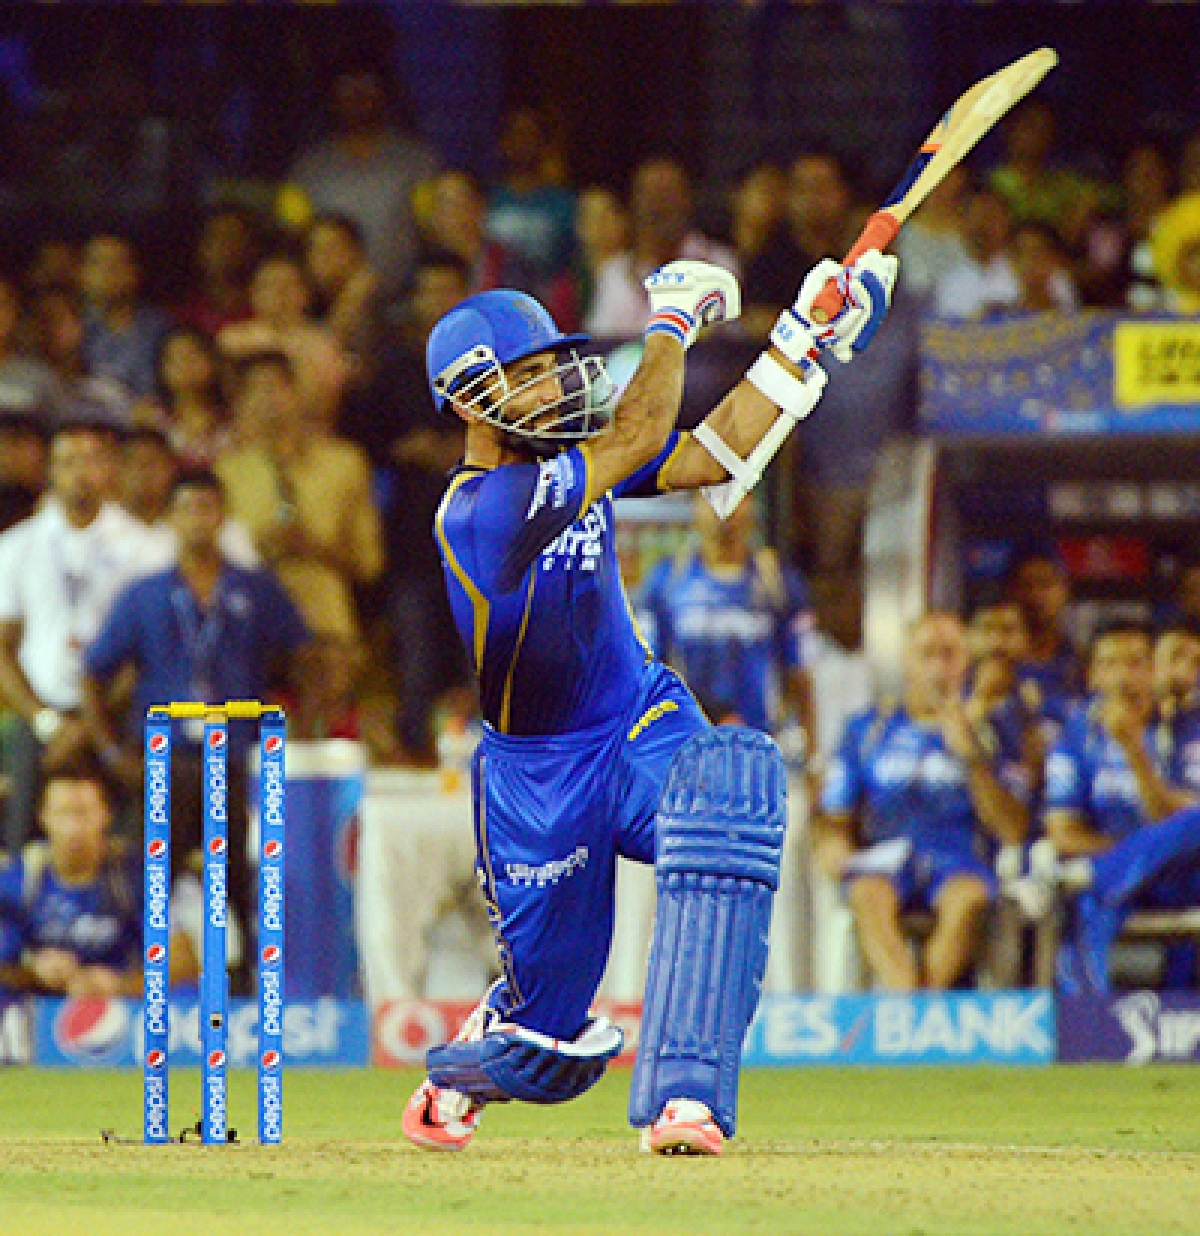 Could not sleep after my dismissal against MI: Ajinkya Rahane